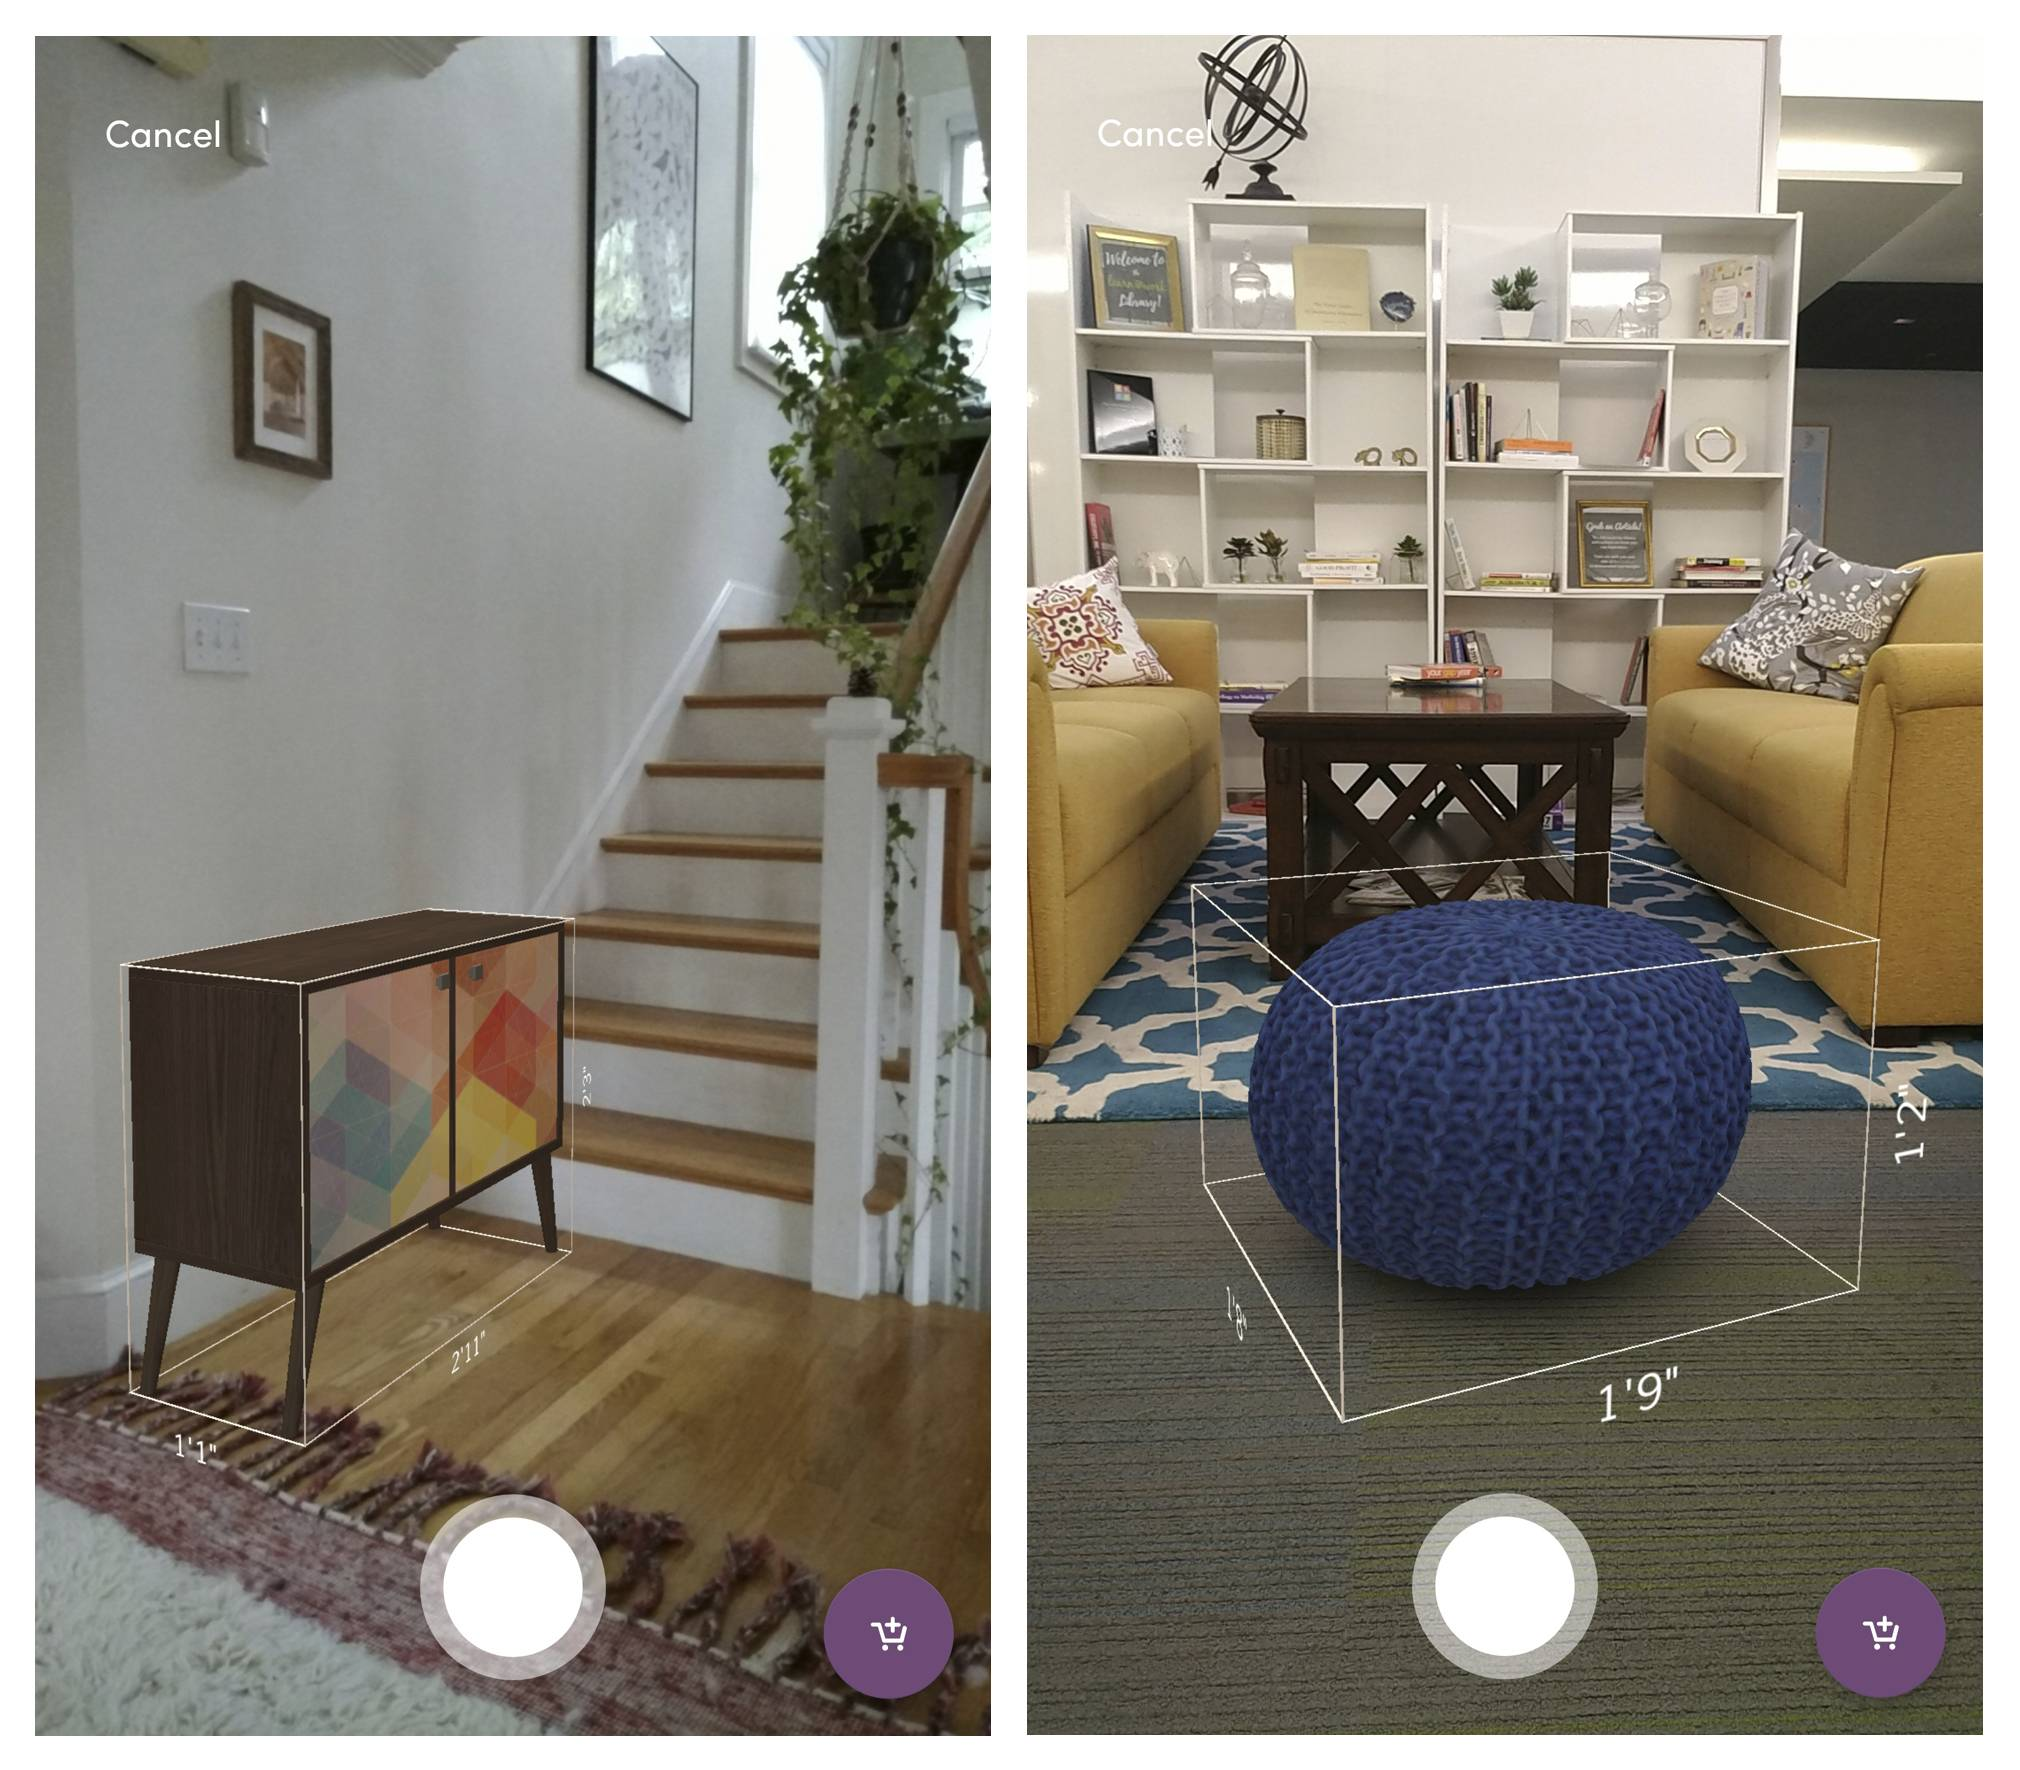 This photo provided by Wayfair shows screenshots demonstrating WayfairView for Tango-enabled Android phones, allowing a user to superimpose virtual images over real-life settings. The app allows shoppers to see how furniture will look in their living room or other space before buying it.